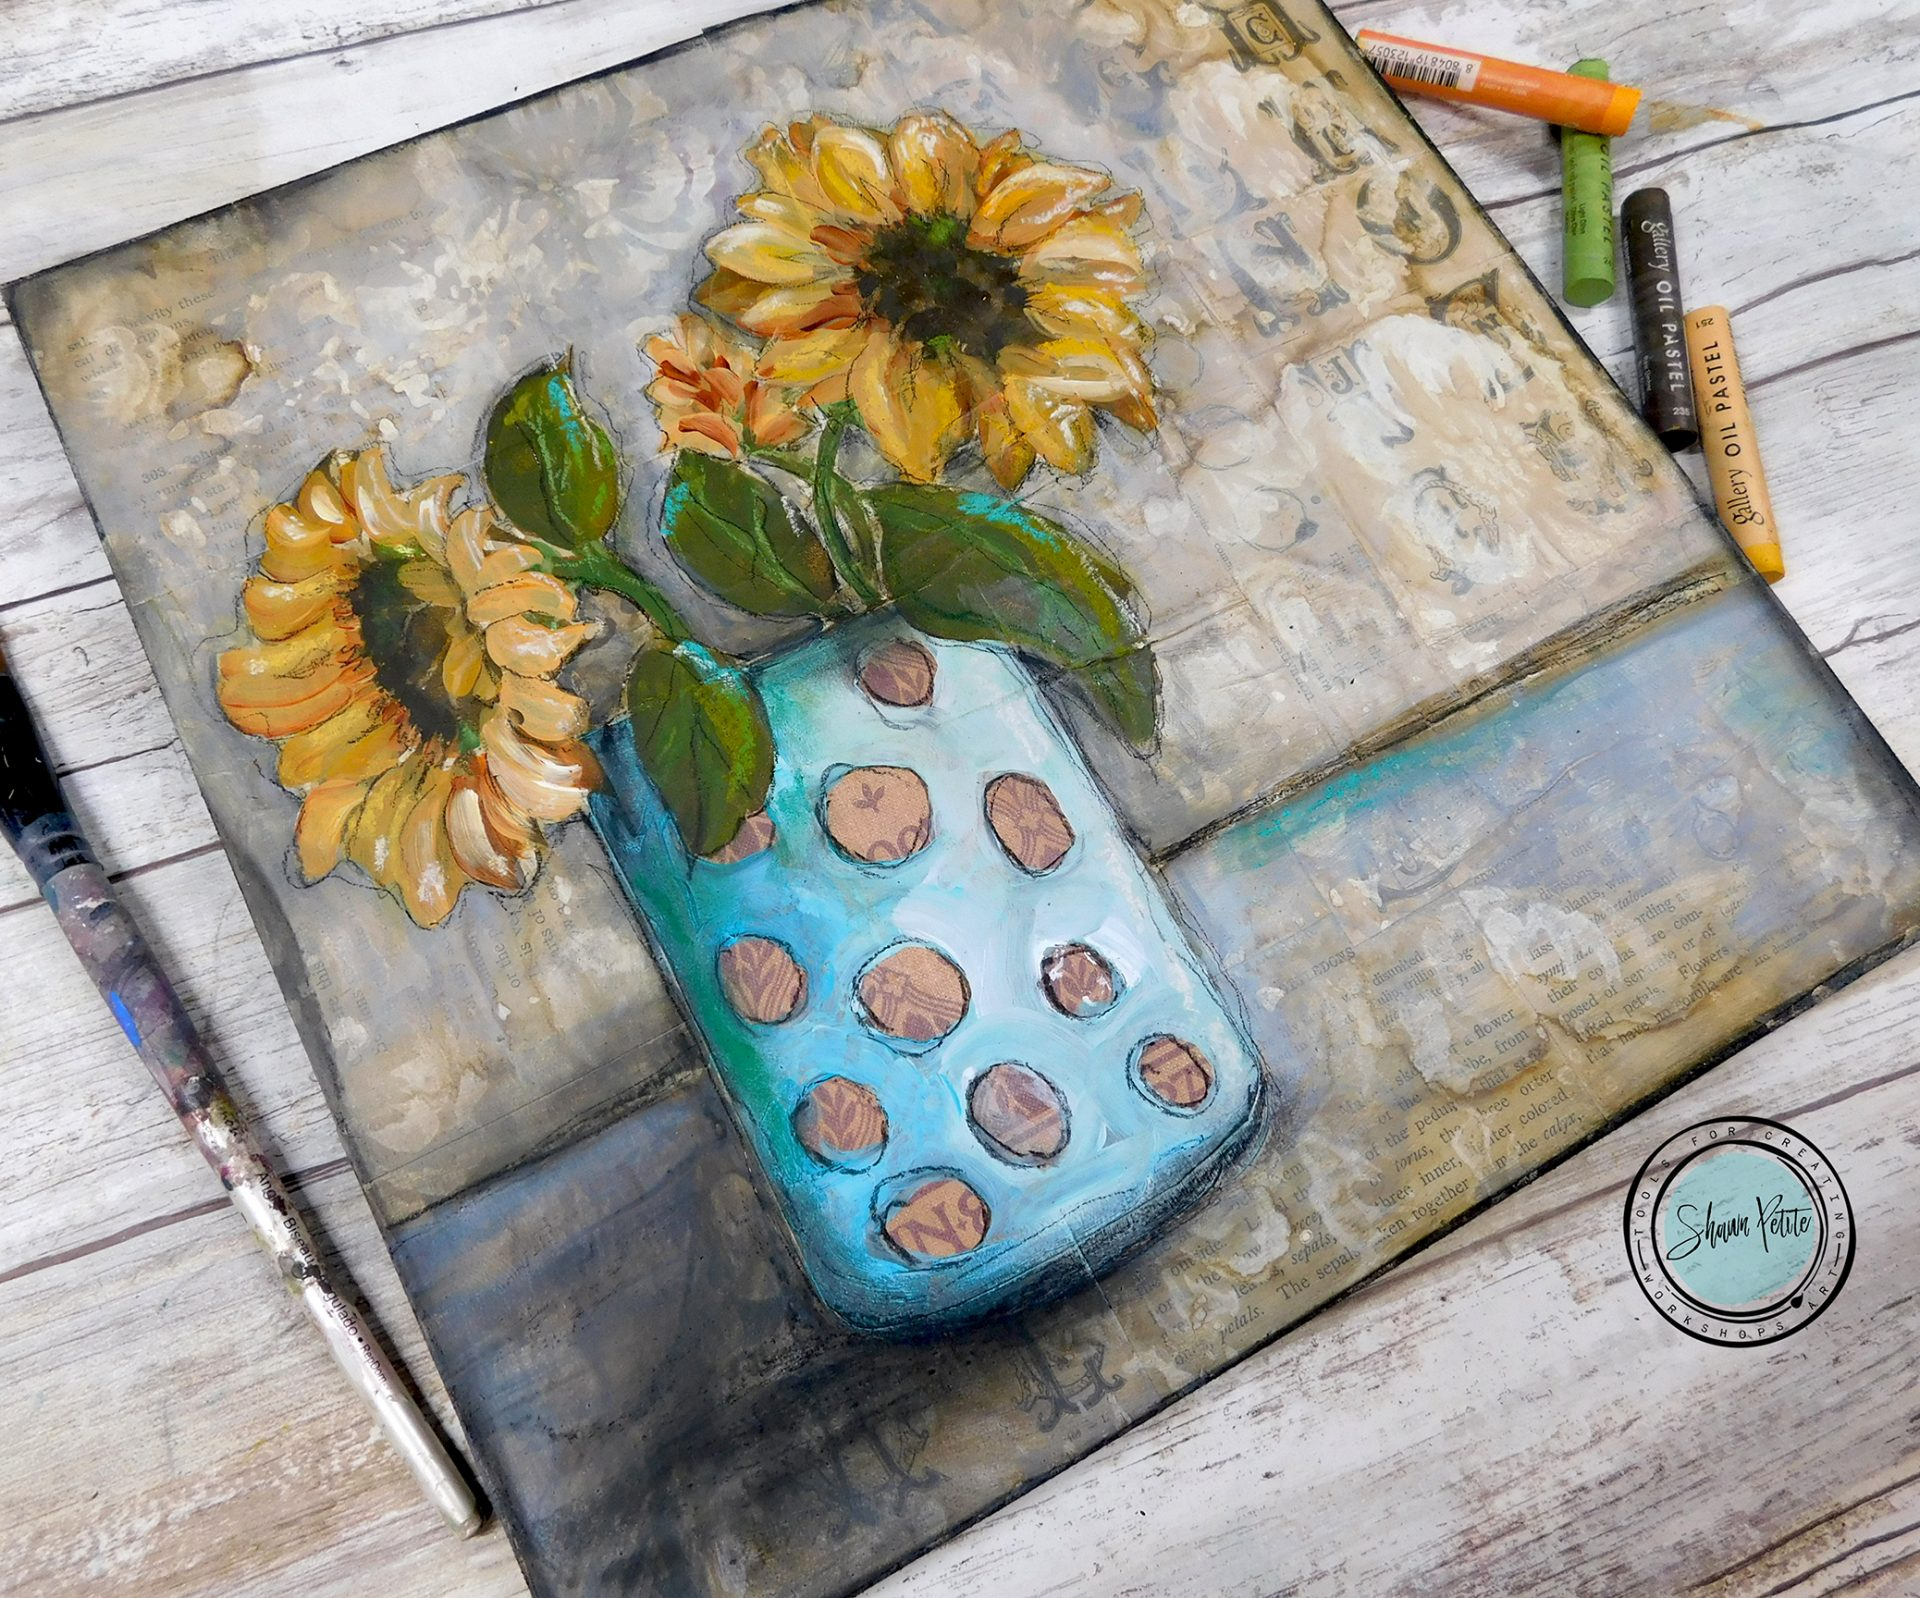 Close up of mixed media sunflowers in vase